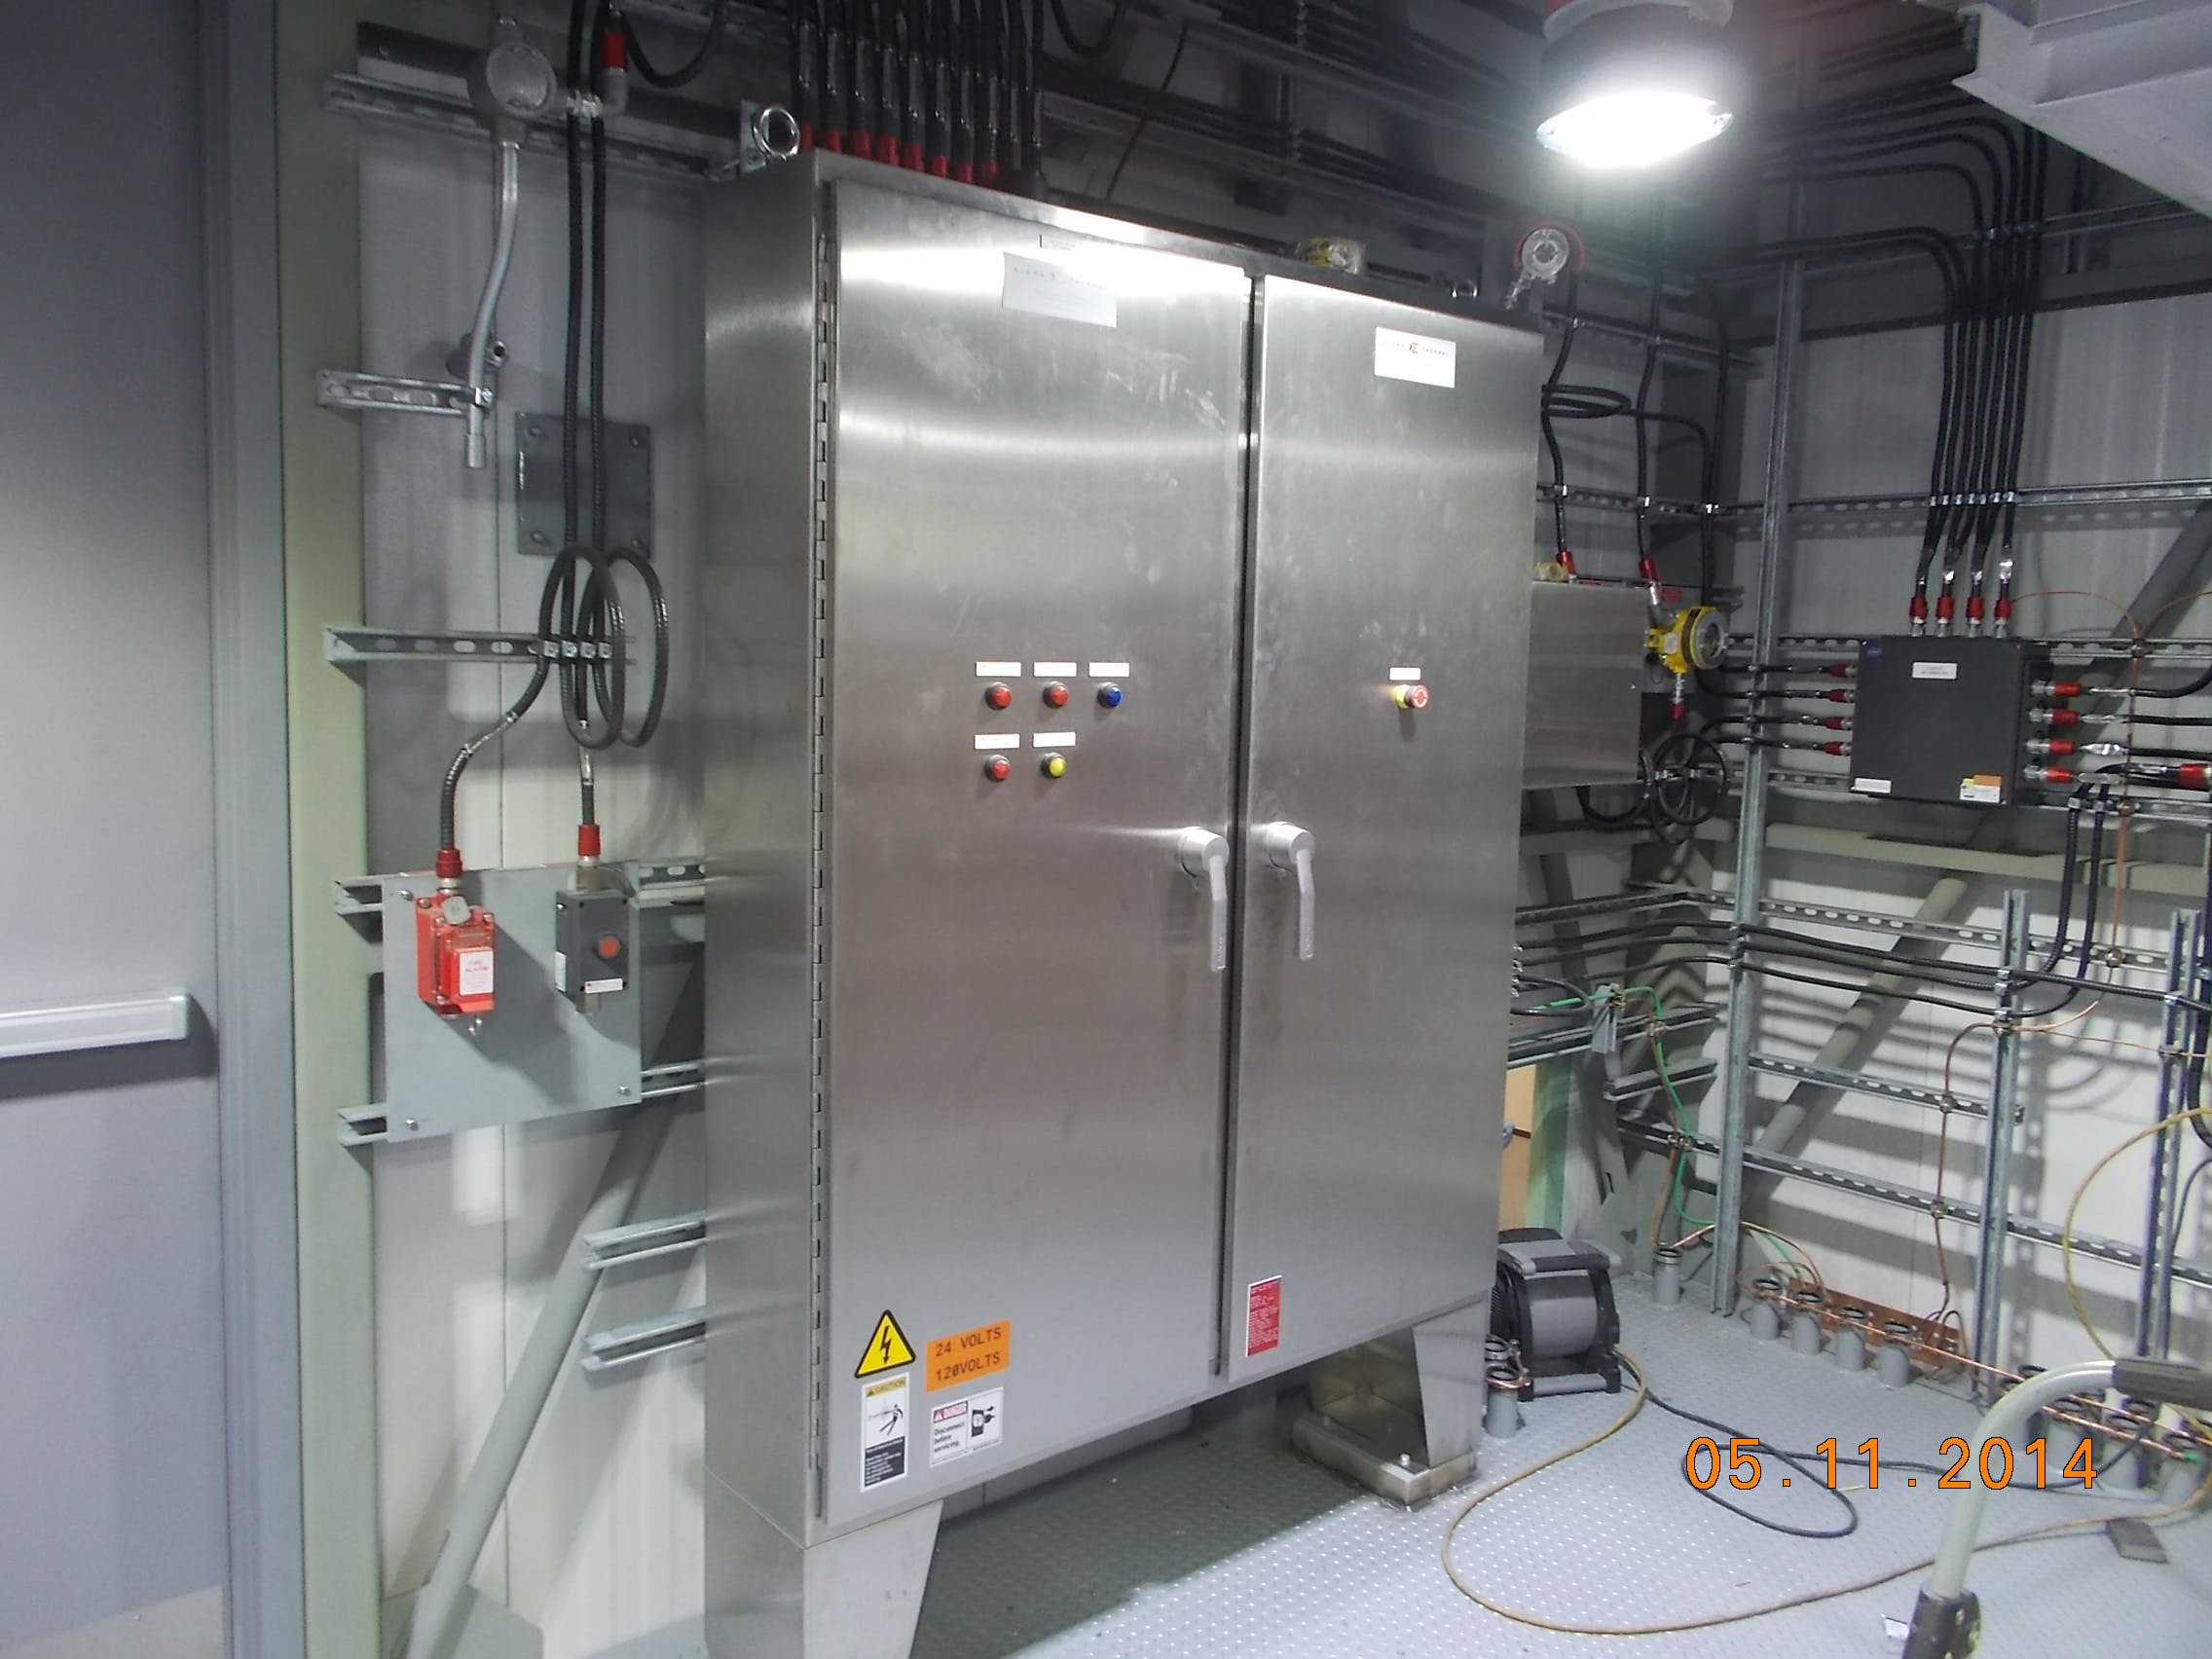 Process Safety & Basic Process Control System Control System sold by Sigma Thermal